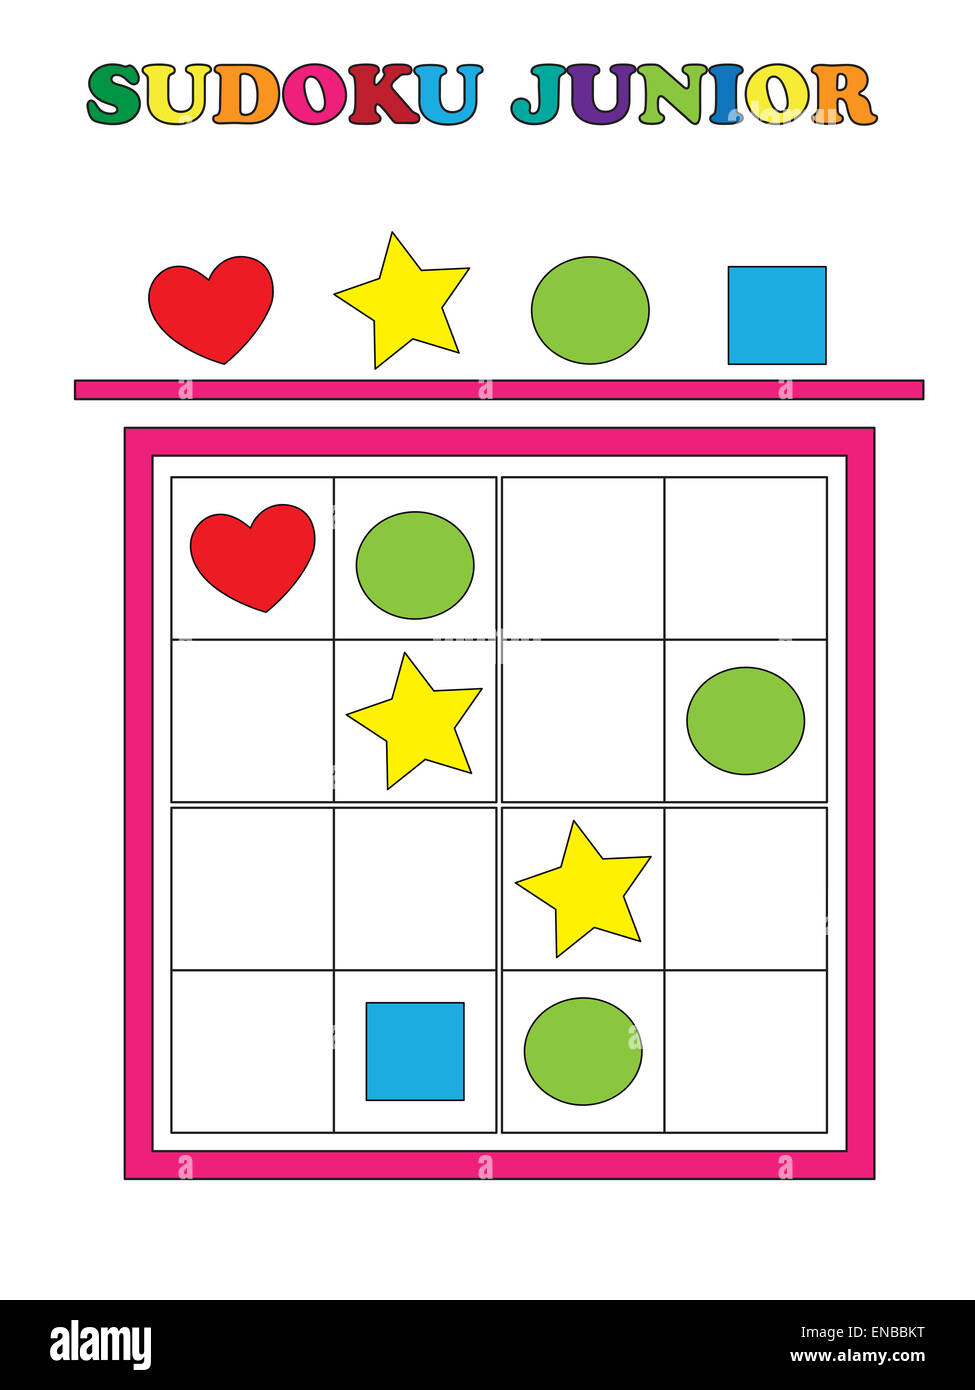 how to play sudoku for kids